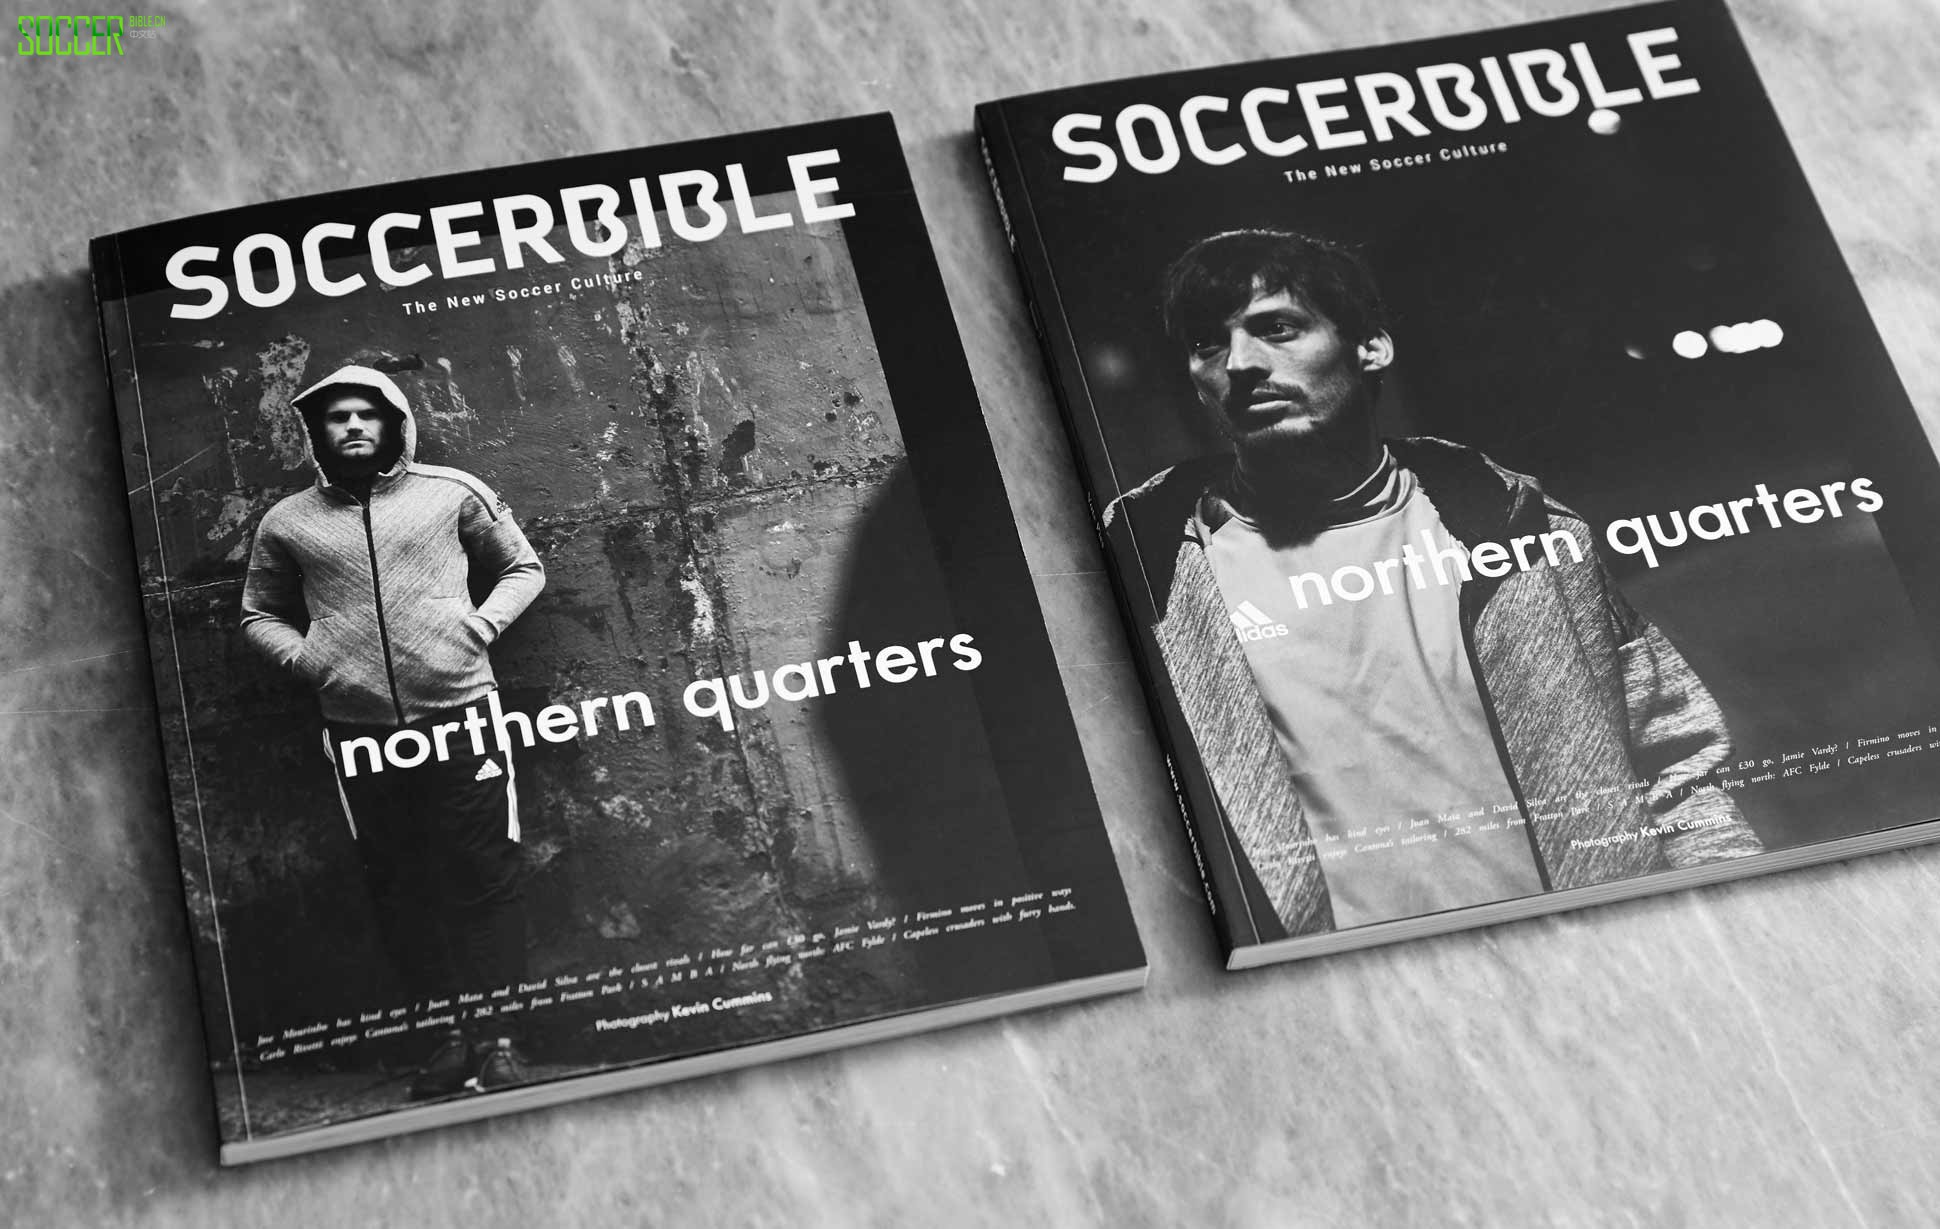 SoccerBible Magazine Issue 7: Northern Quarters : Books and Magazines : Soccer Bible